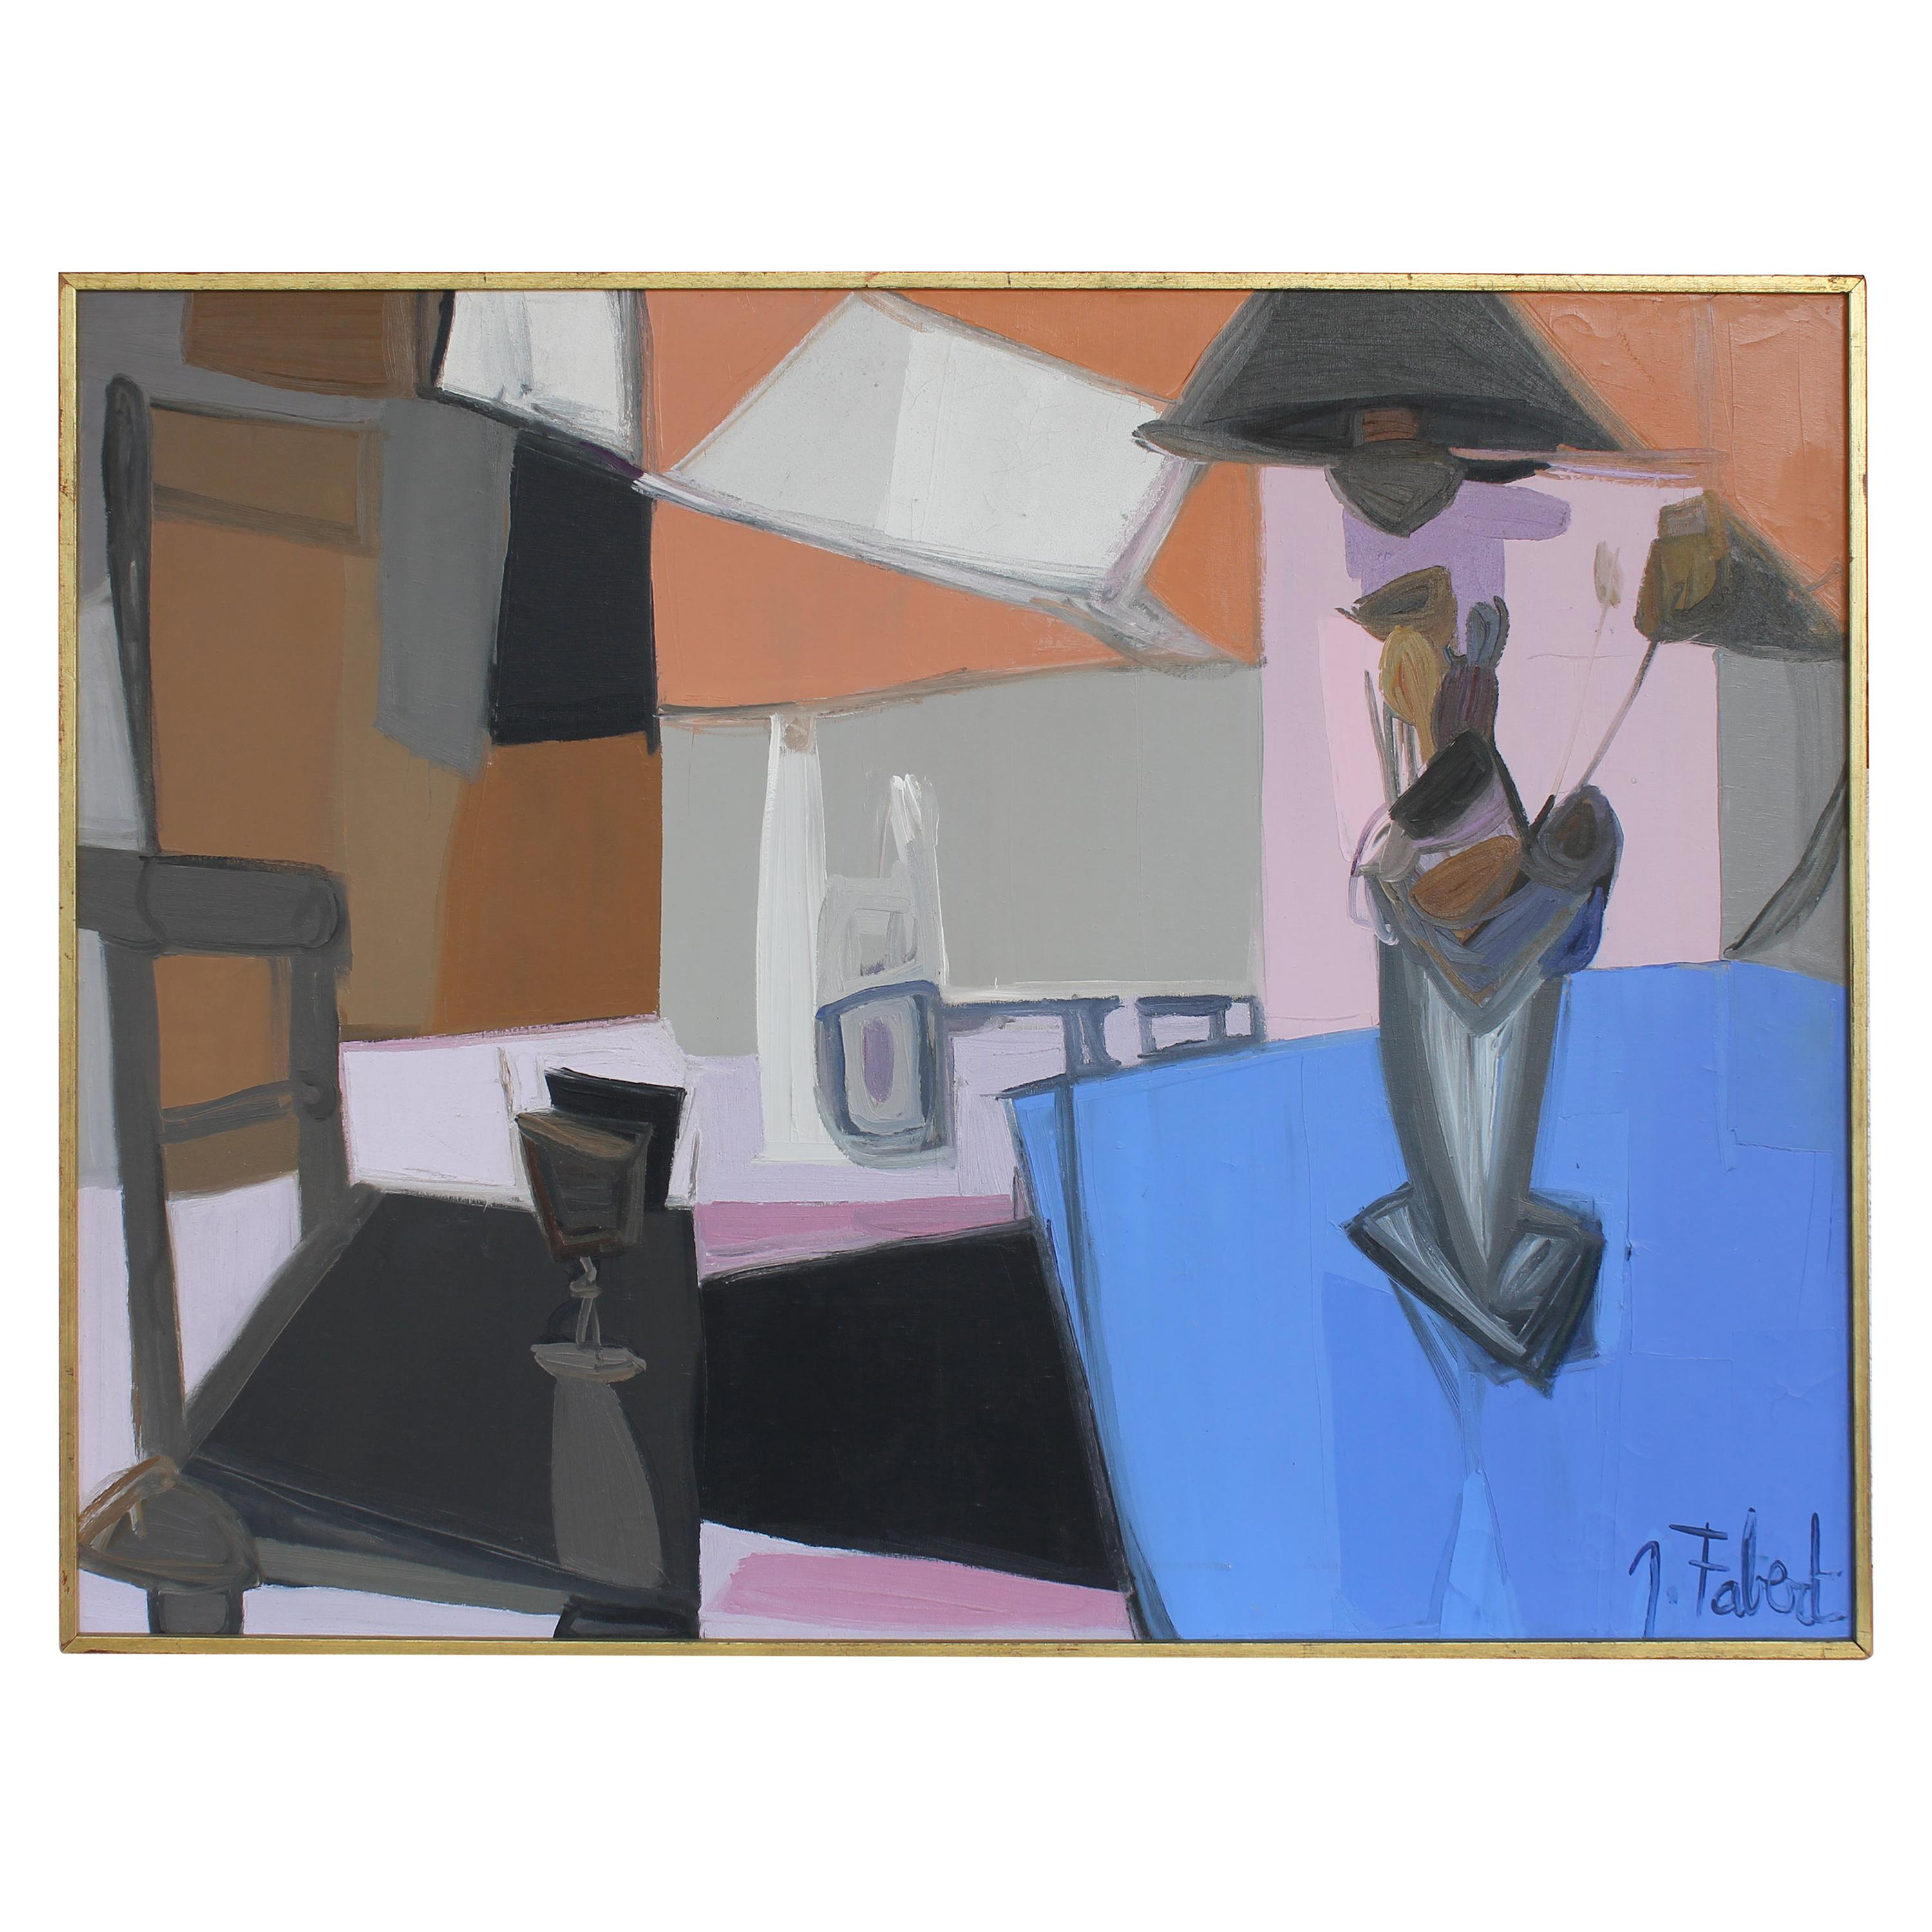 1960s Abstract Interior Scene Oil Painting by Jacques Fabert